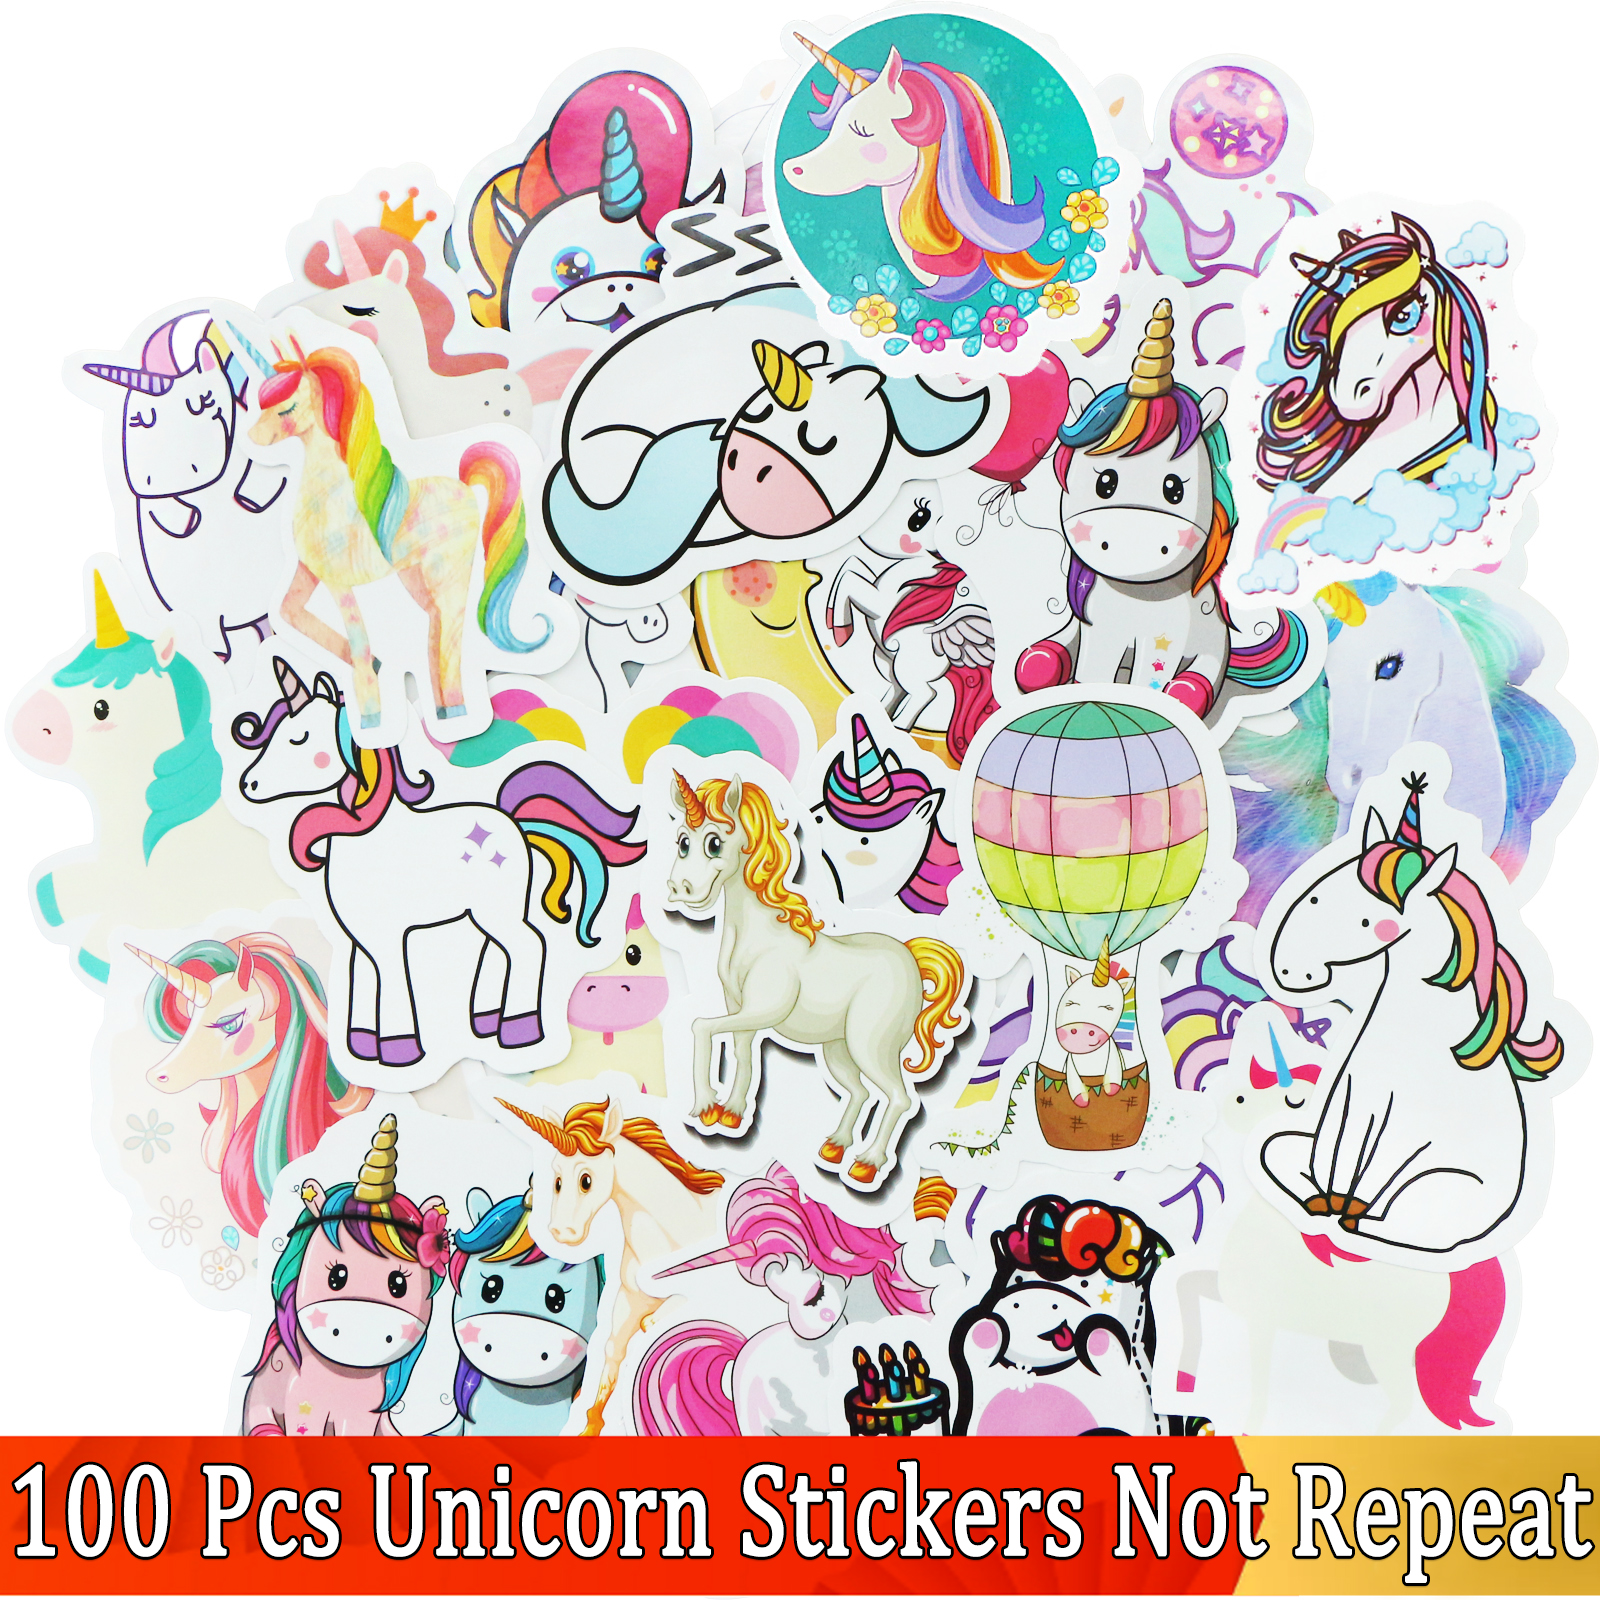 50/100 Pcs JDM Cartoon VSCO Girls Cute Stickers For Unicorn Laptop Skateboard Styling Motorcycle Doodle Decals Sticker Funny Toy